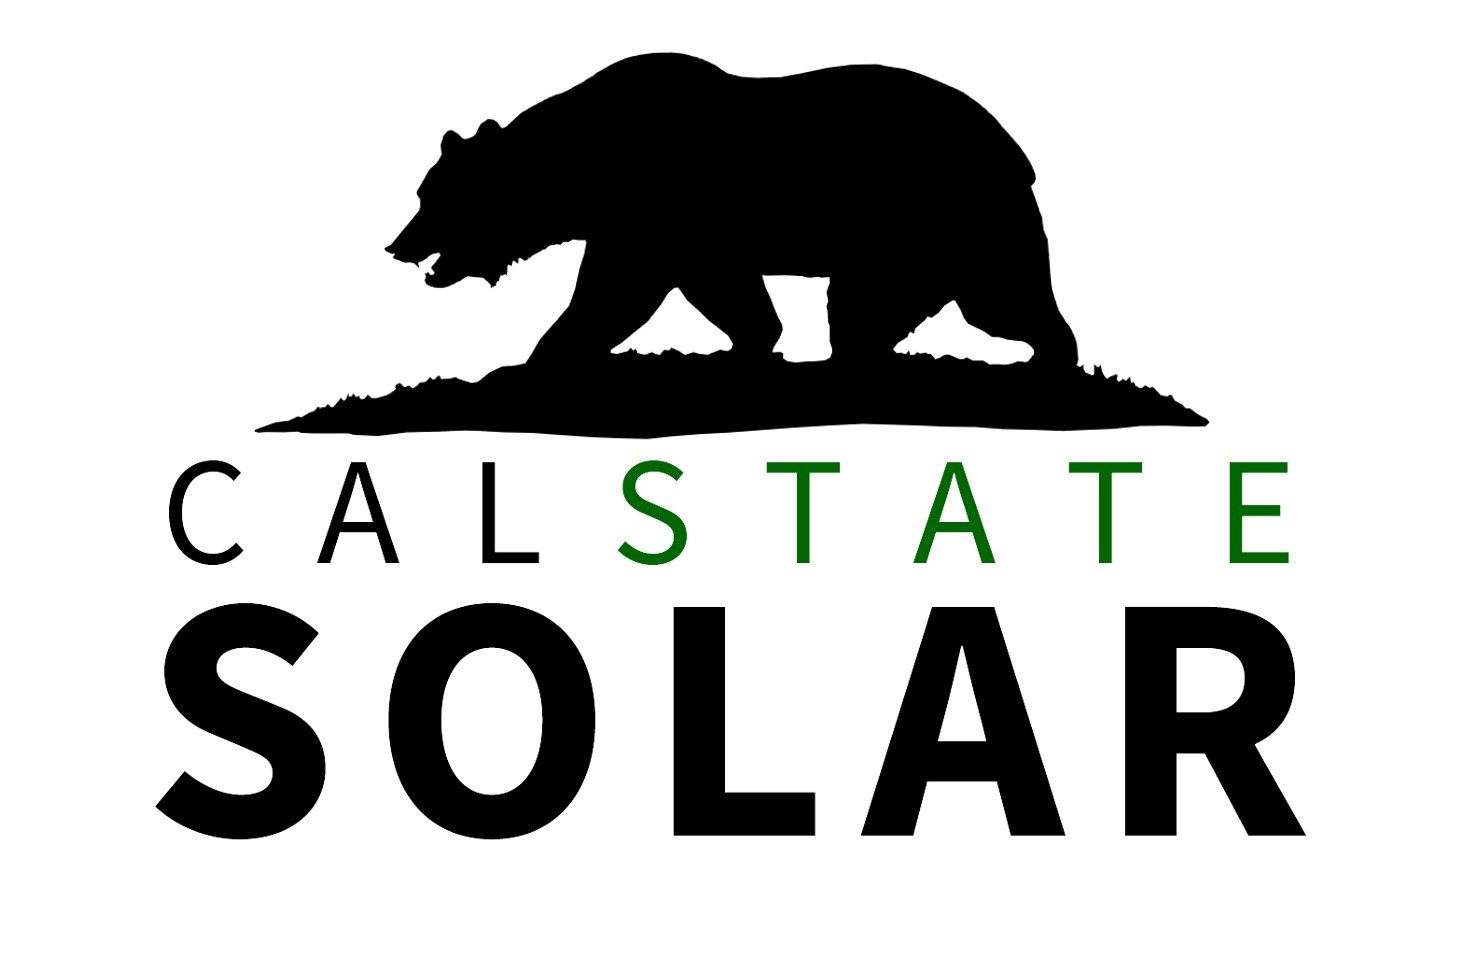 cal state solar